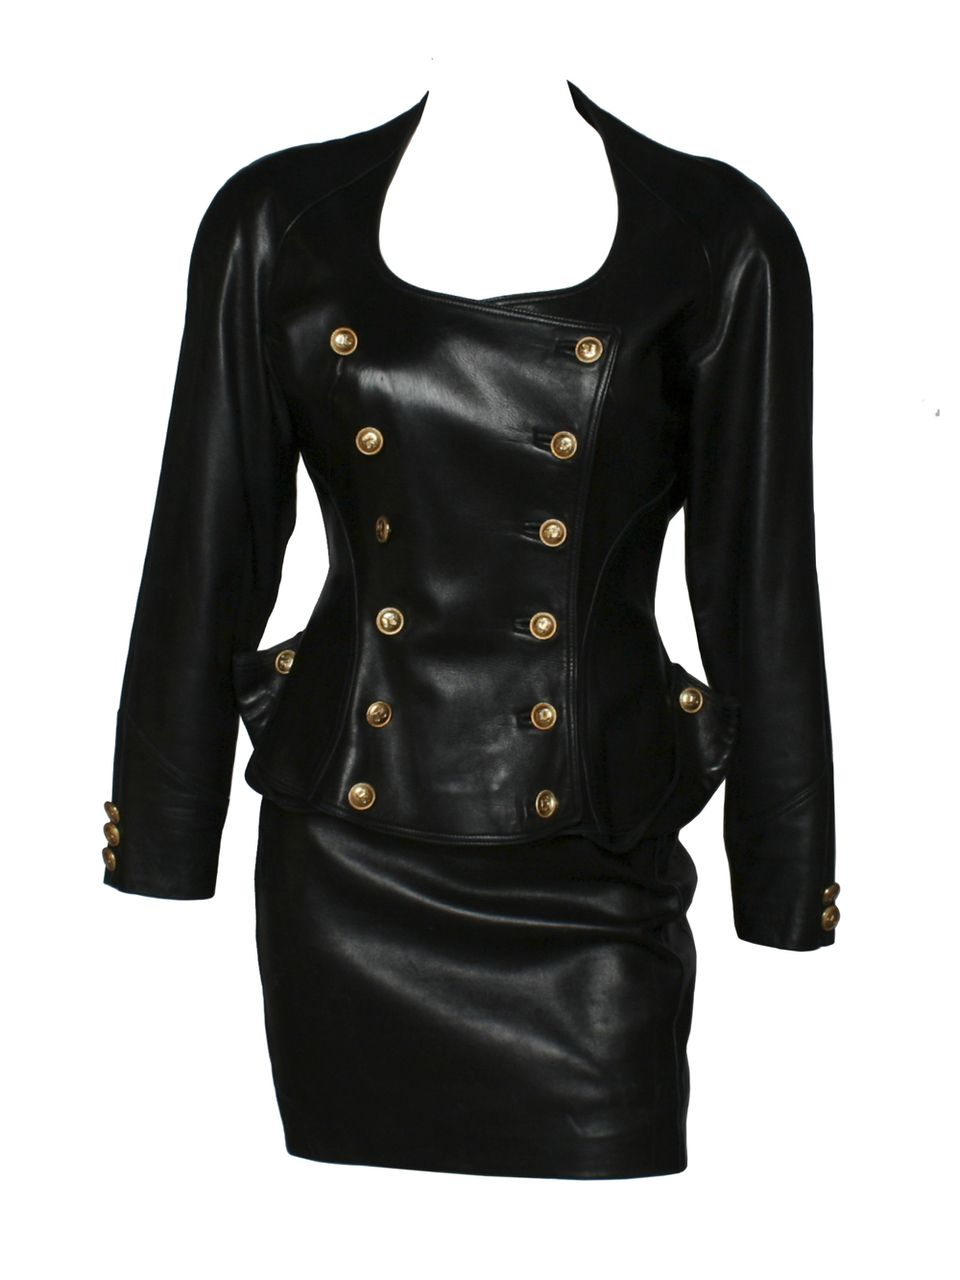 Jean Claude Jitrois Double Breasted Leather Jacket Skirt Leather Jacket Jackets Leather [ 1280 x 960 Pixel ]